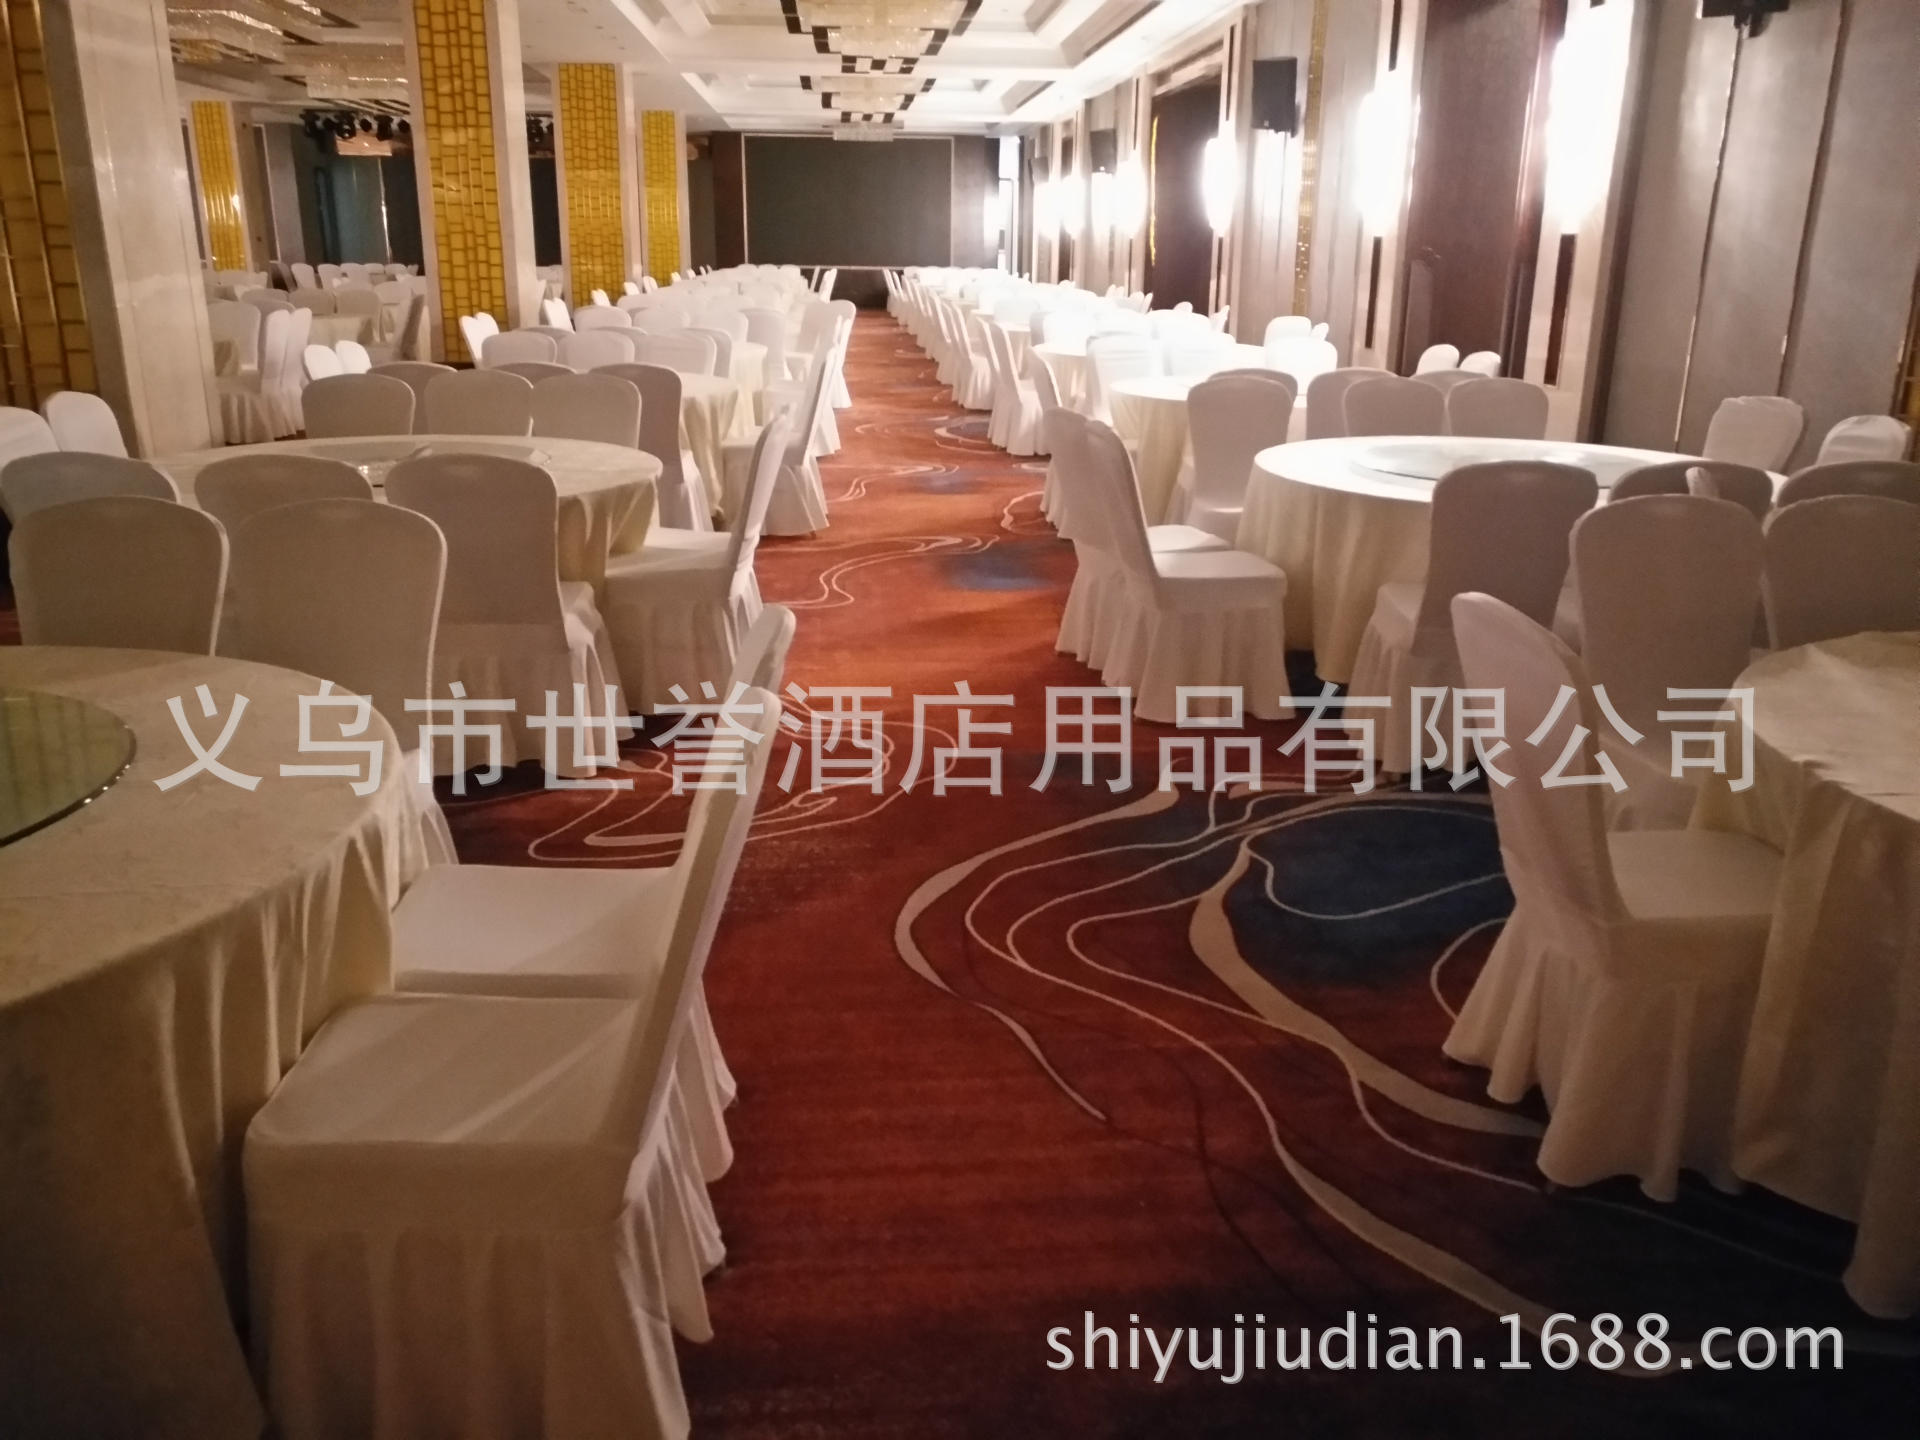 custom banquet chair covers cover rental online supply nanjing wuxi hotel wedding